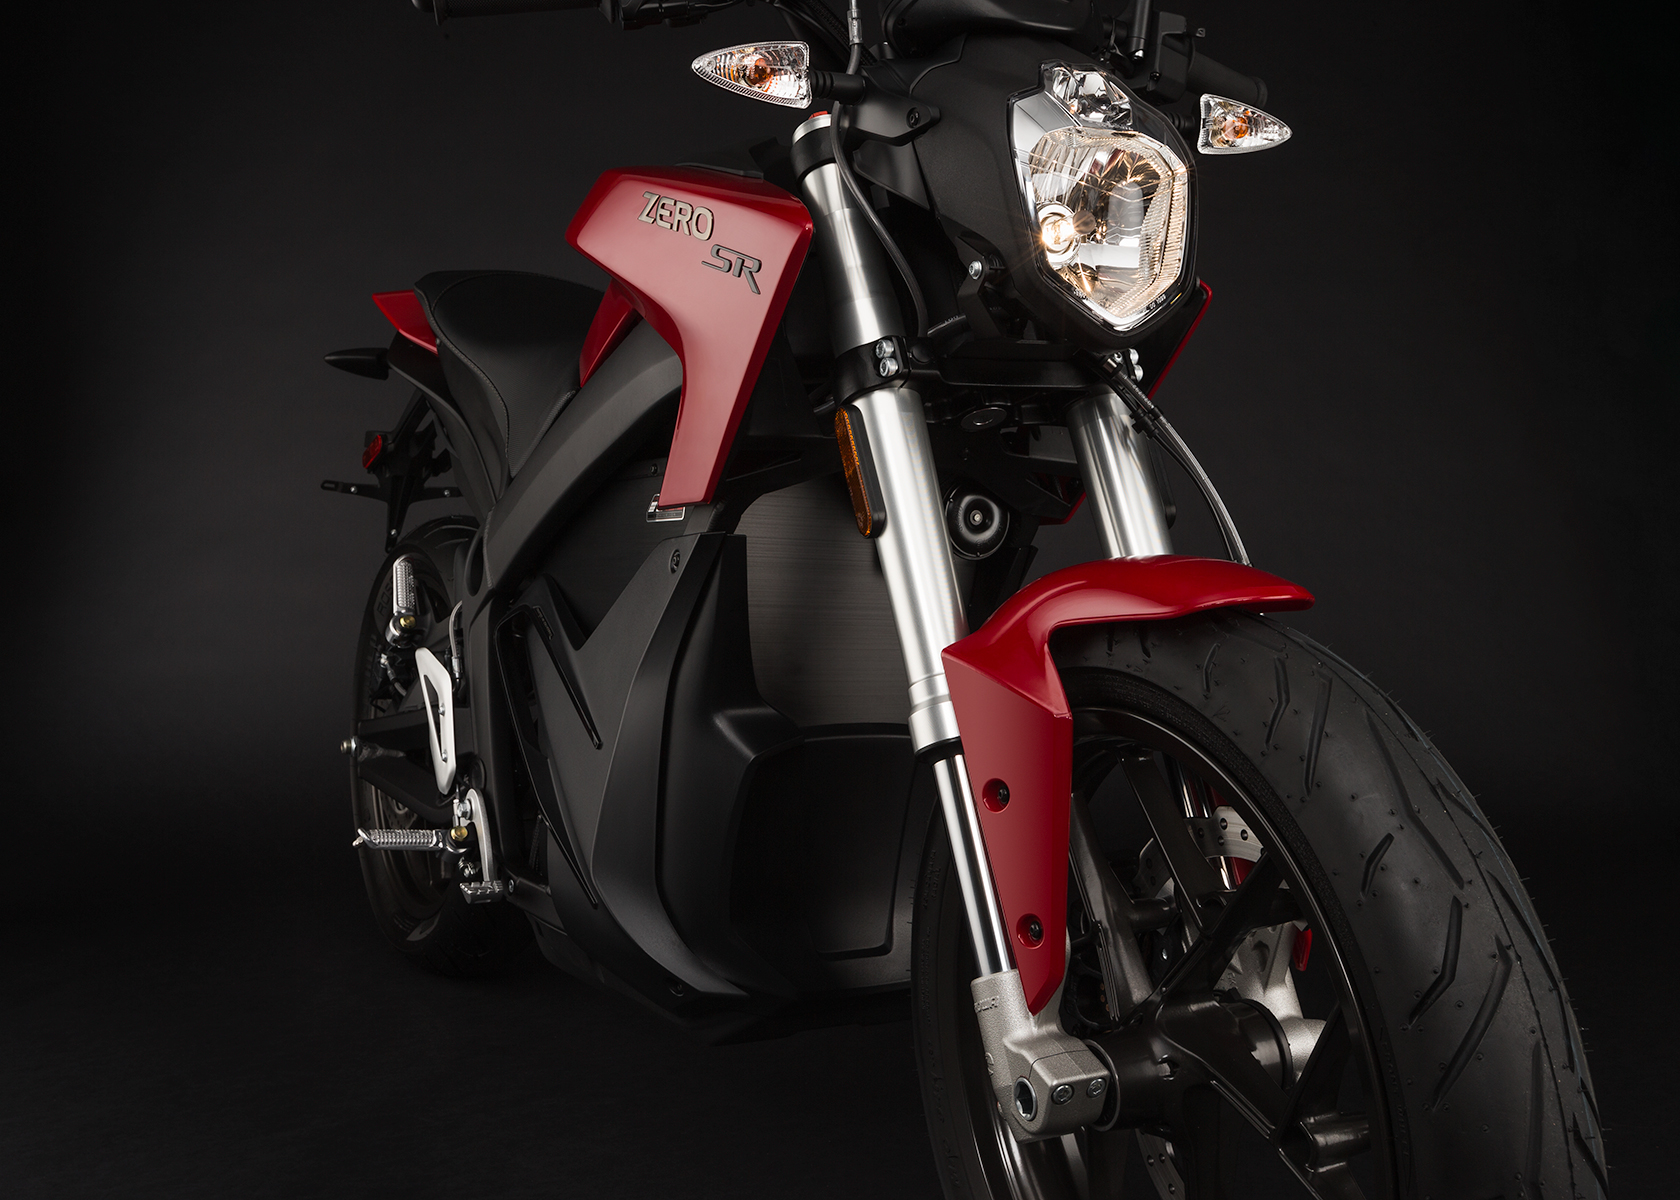 2015 Zero SR Electric Motorcycle: Front Fork